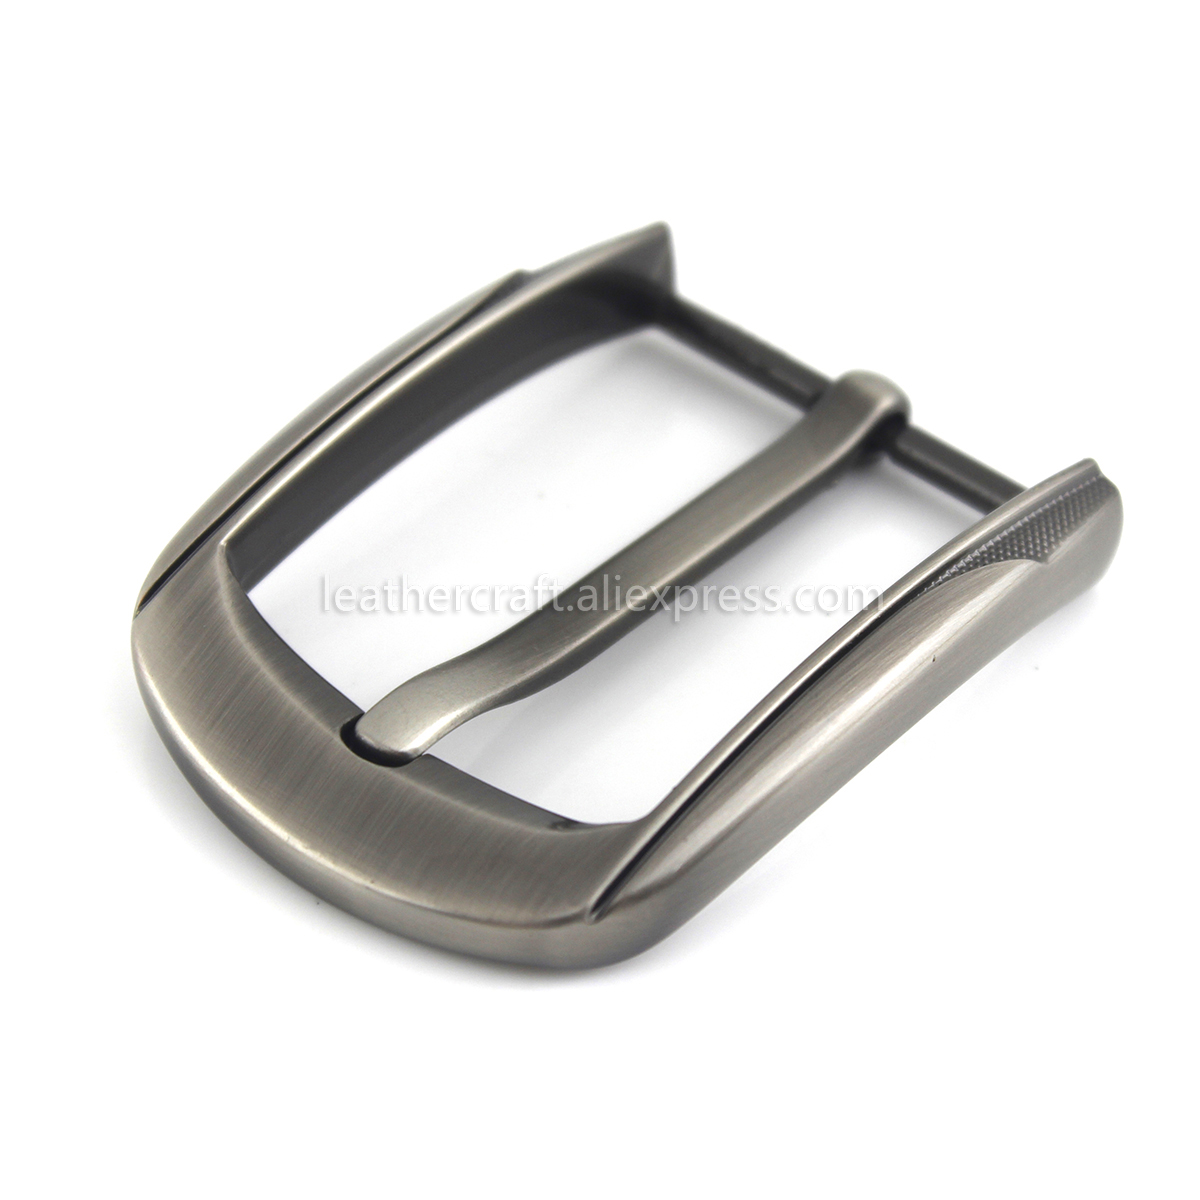 1x 40mm Metal Belt Buckle Center Bar Single Pin Buckle Men 39 s Fashion Belt Buckle fit 37 39mm Belt Leather Craft Accessories in Buckles amp Hooks from Home amp Garden